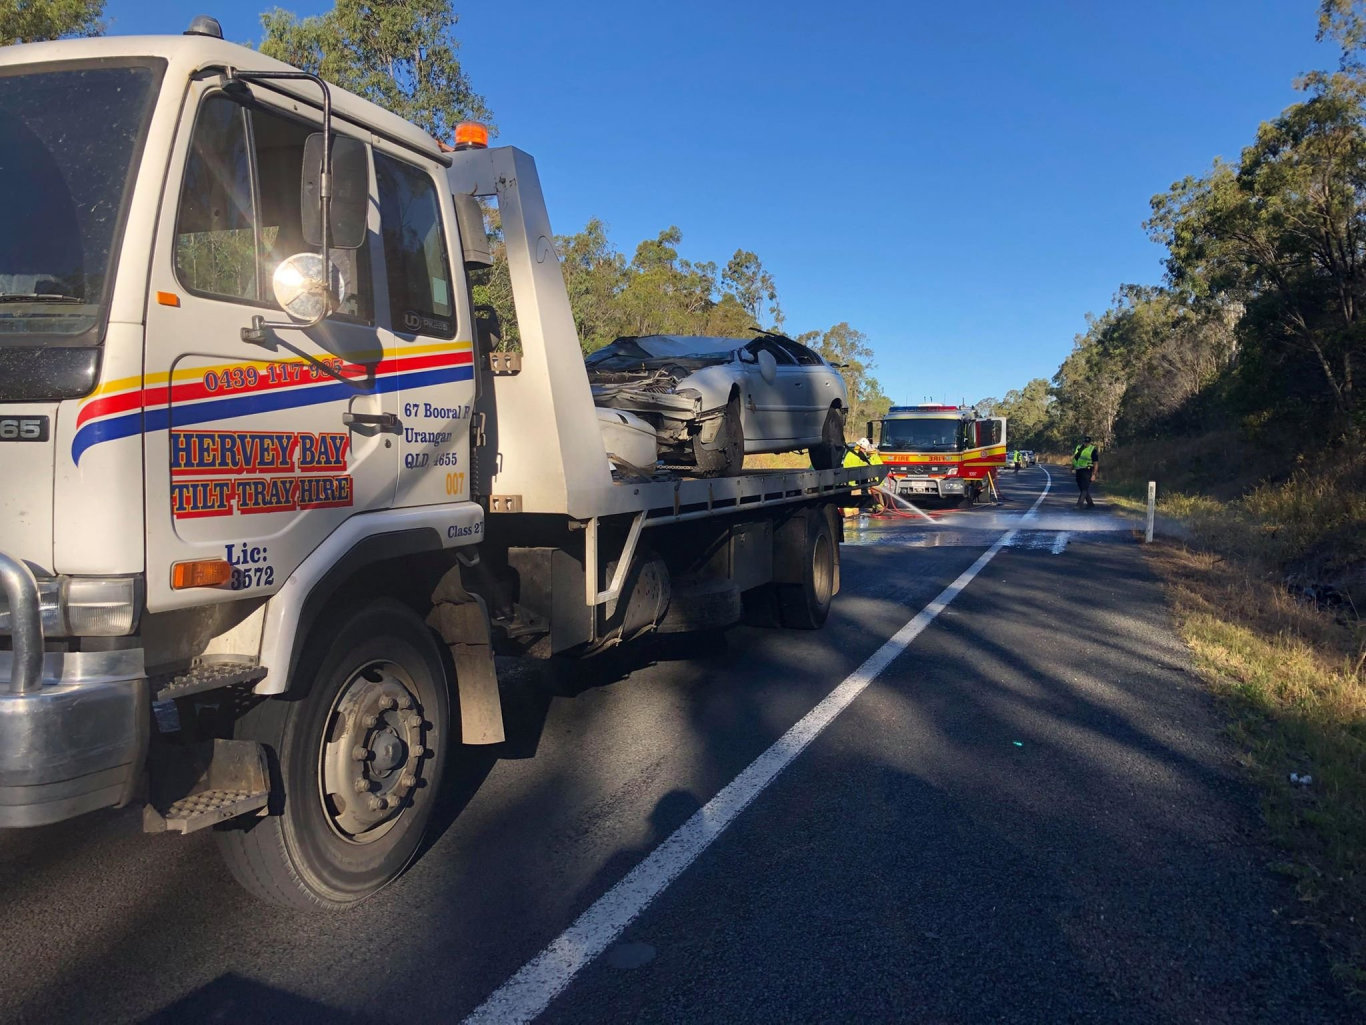 The scene of a single-car roll over on the Bruce Hwy in Torbanlea near Burrum River Rd about 2.40pm today.